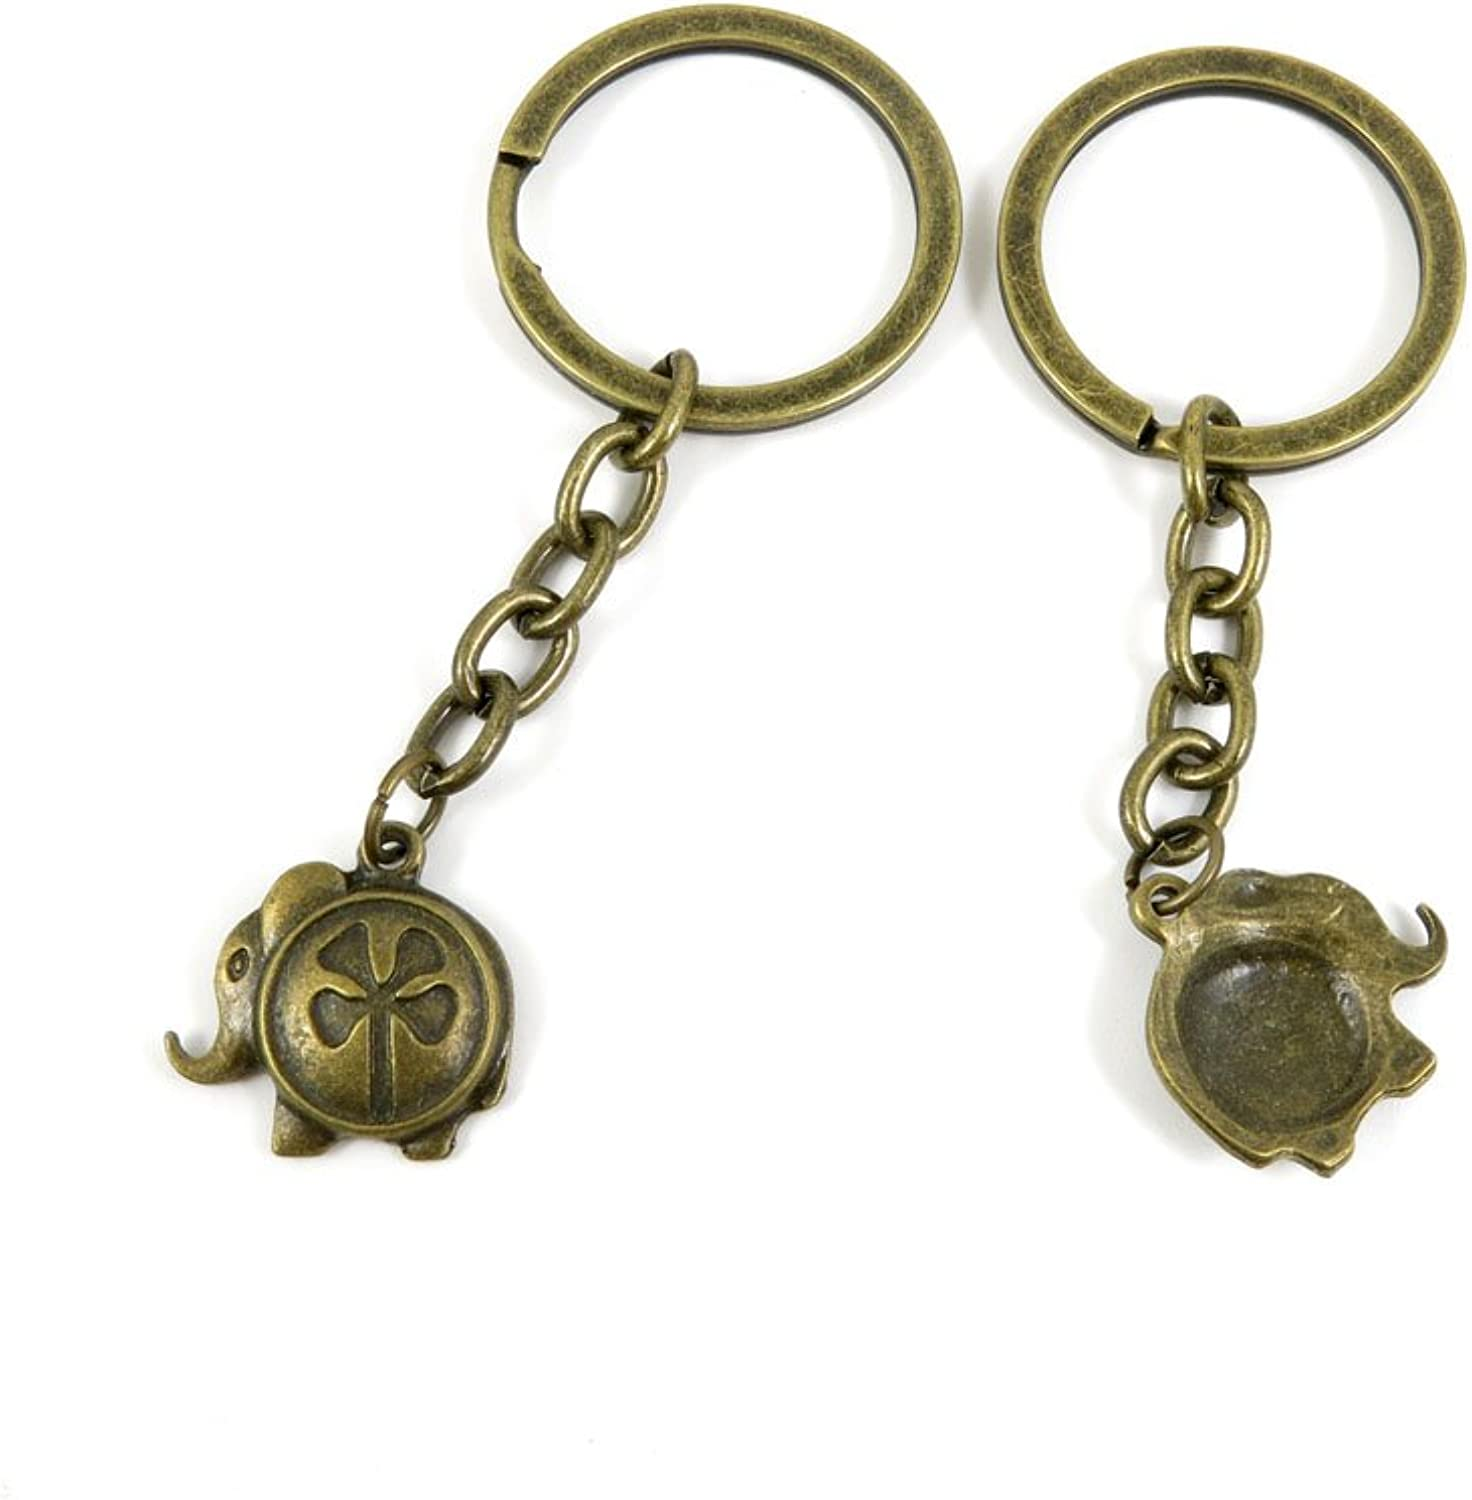 100 PCS Keyrings Keychains Key Ring Chains Tags Jewelry Findings Clasps Buckles Supplies P7GP8 Lucky Elephant